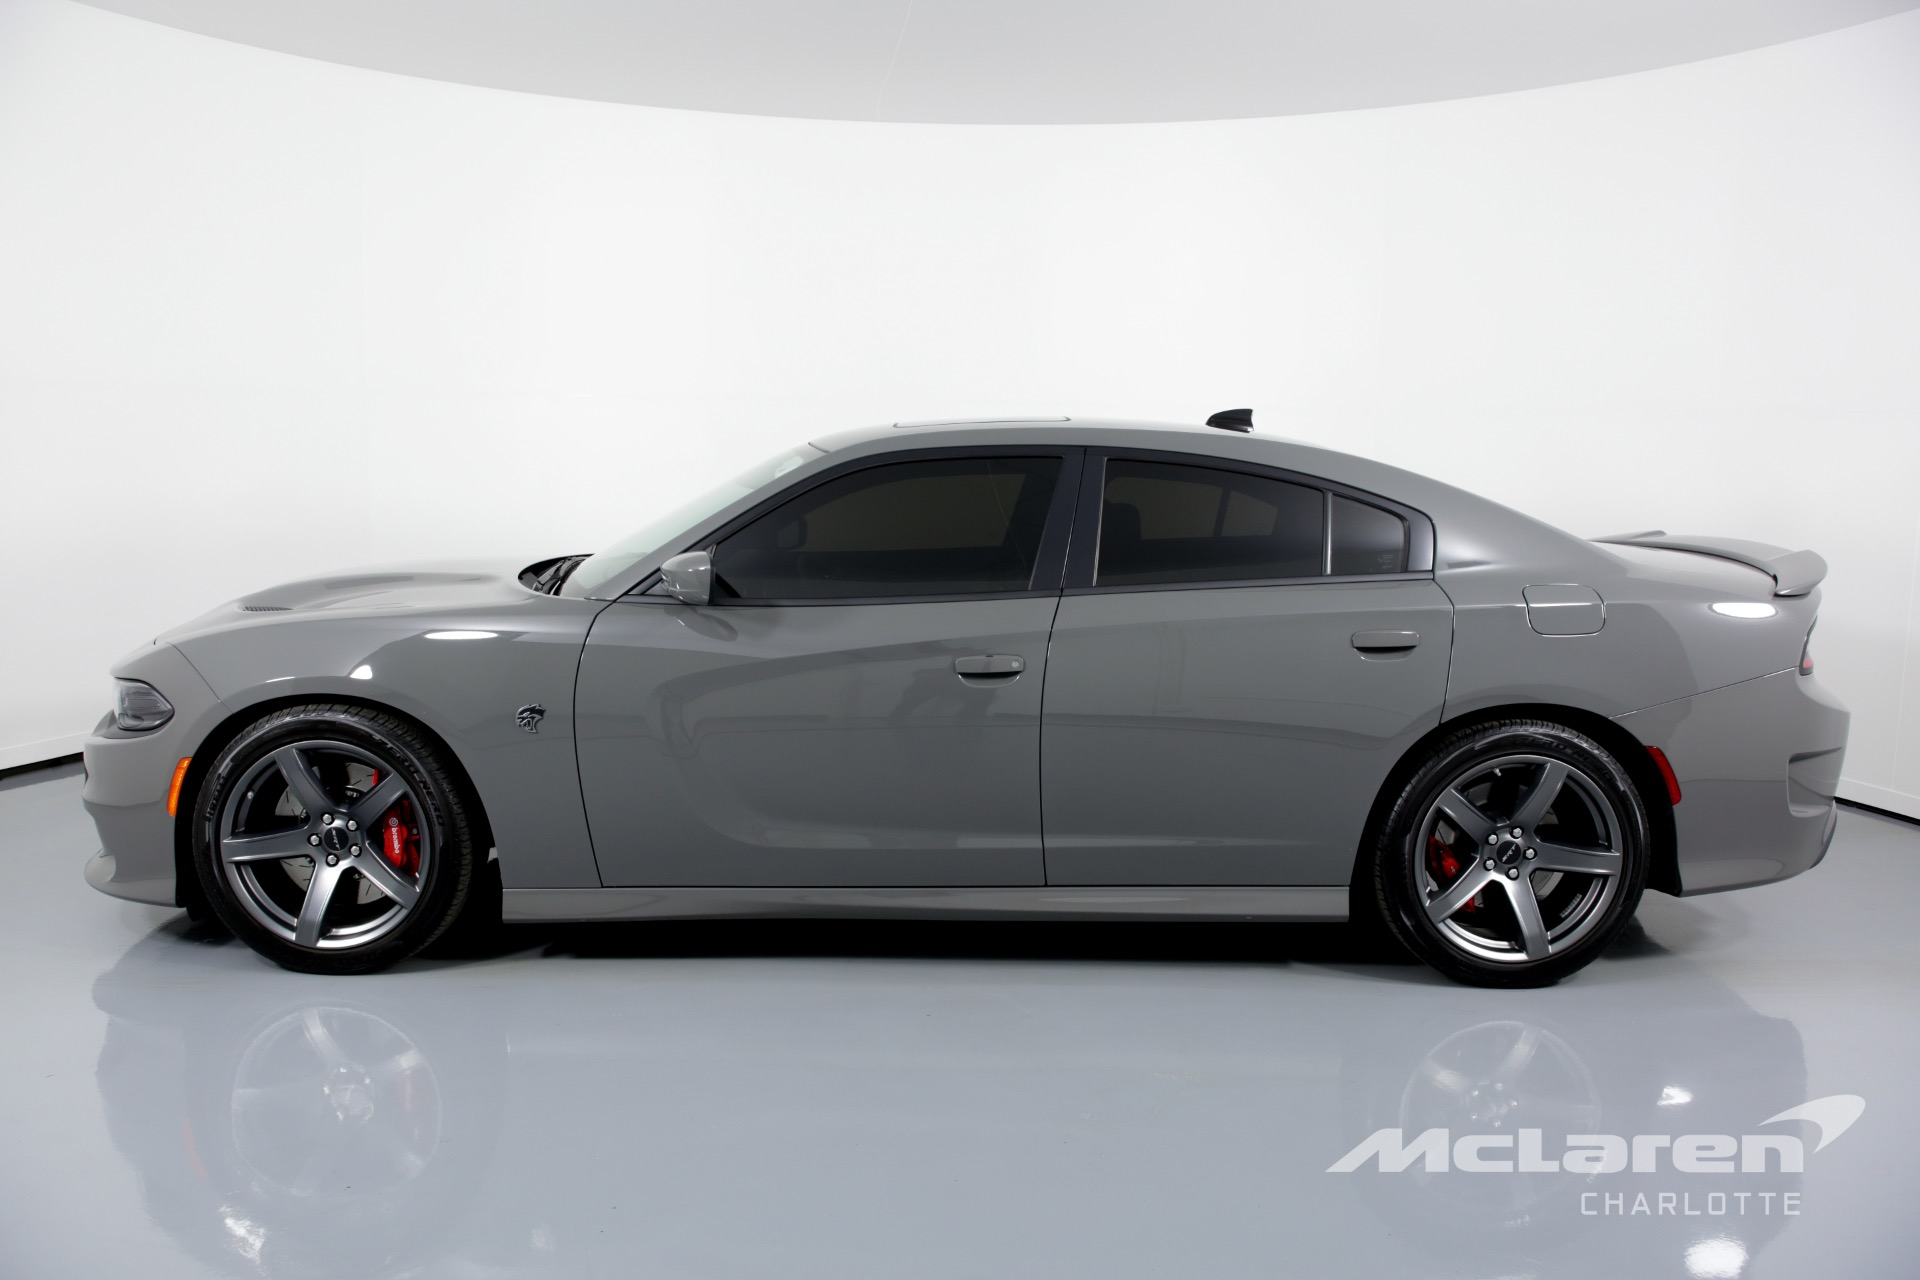 Used 2018 Dodge Charger SRT Hellcat For Sale ($63,996